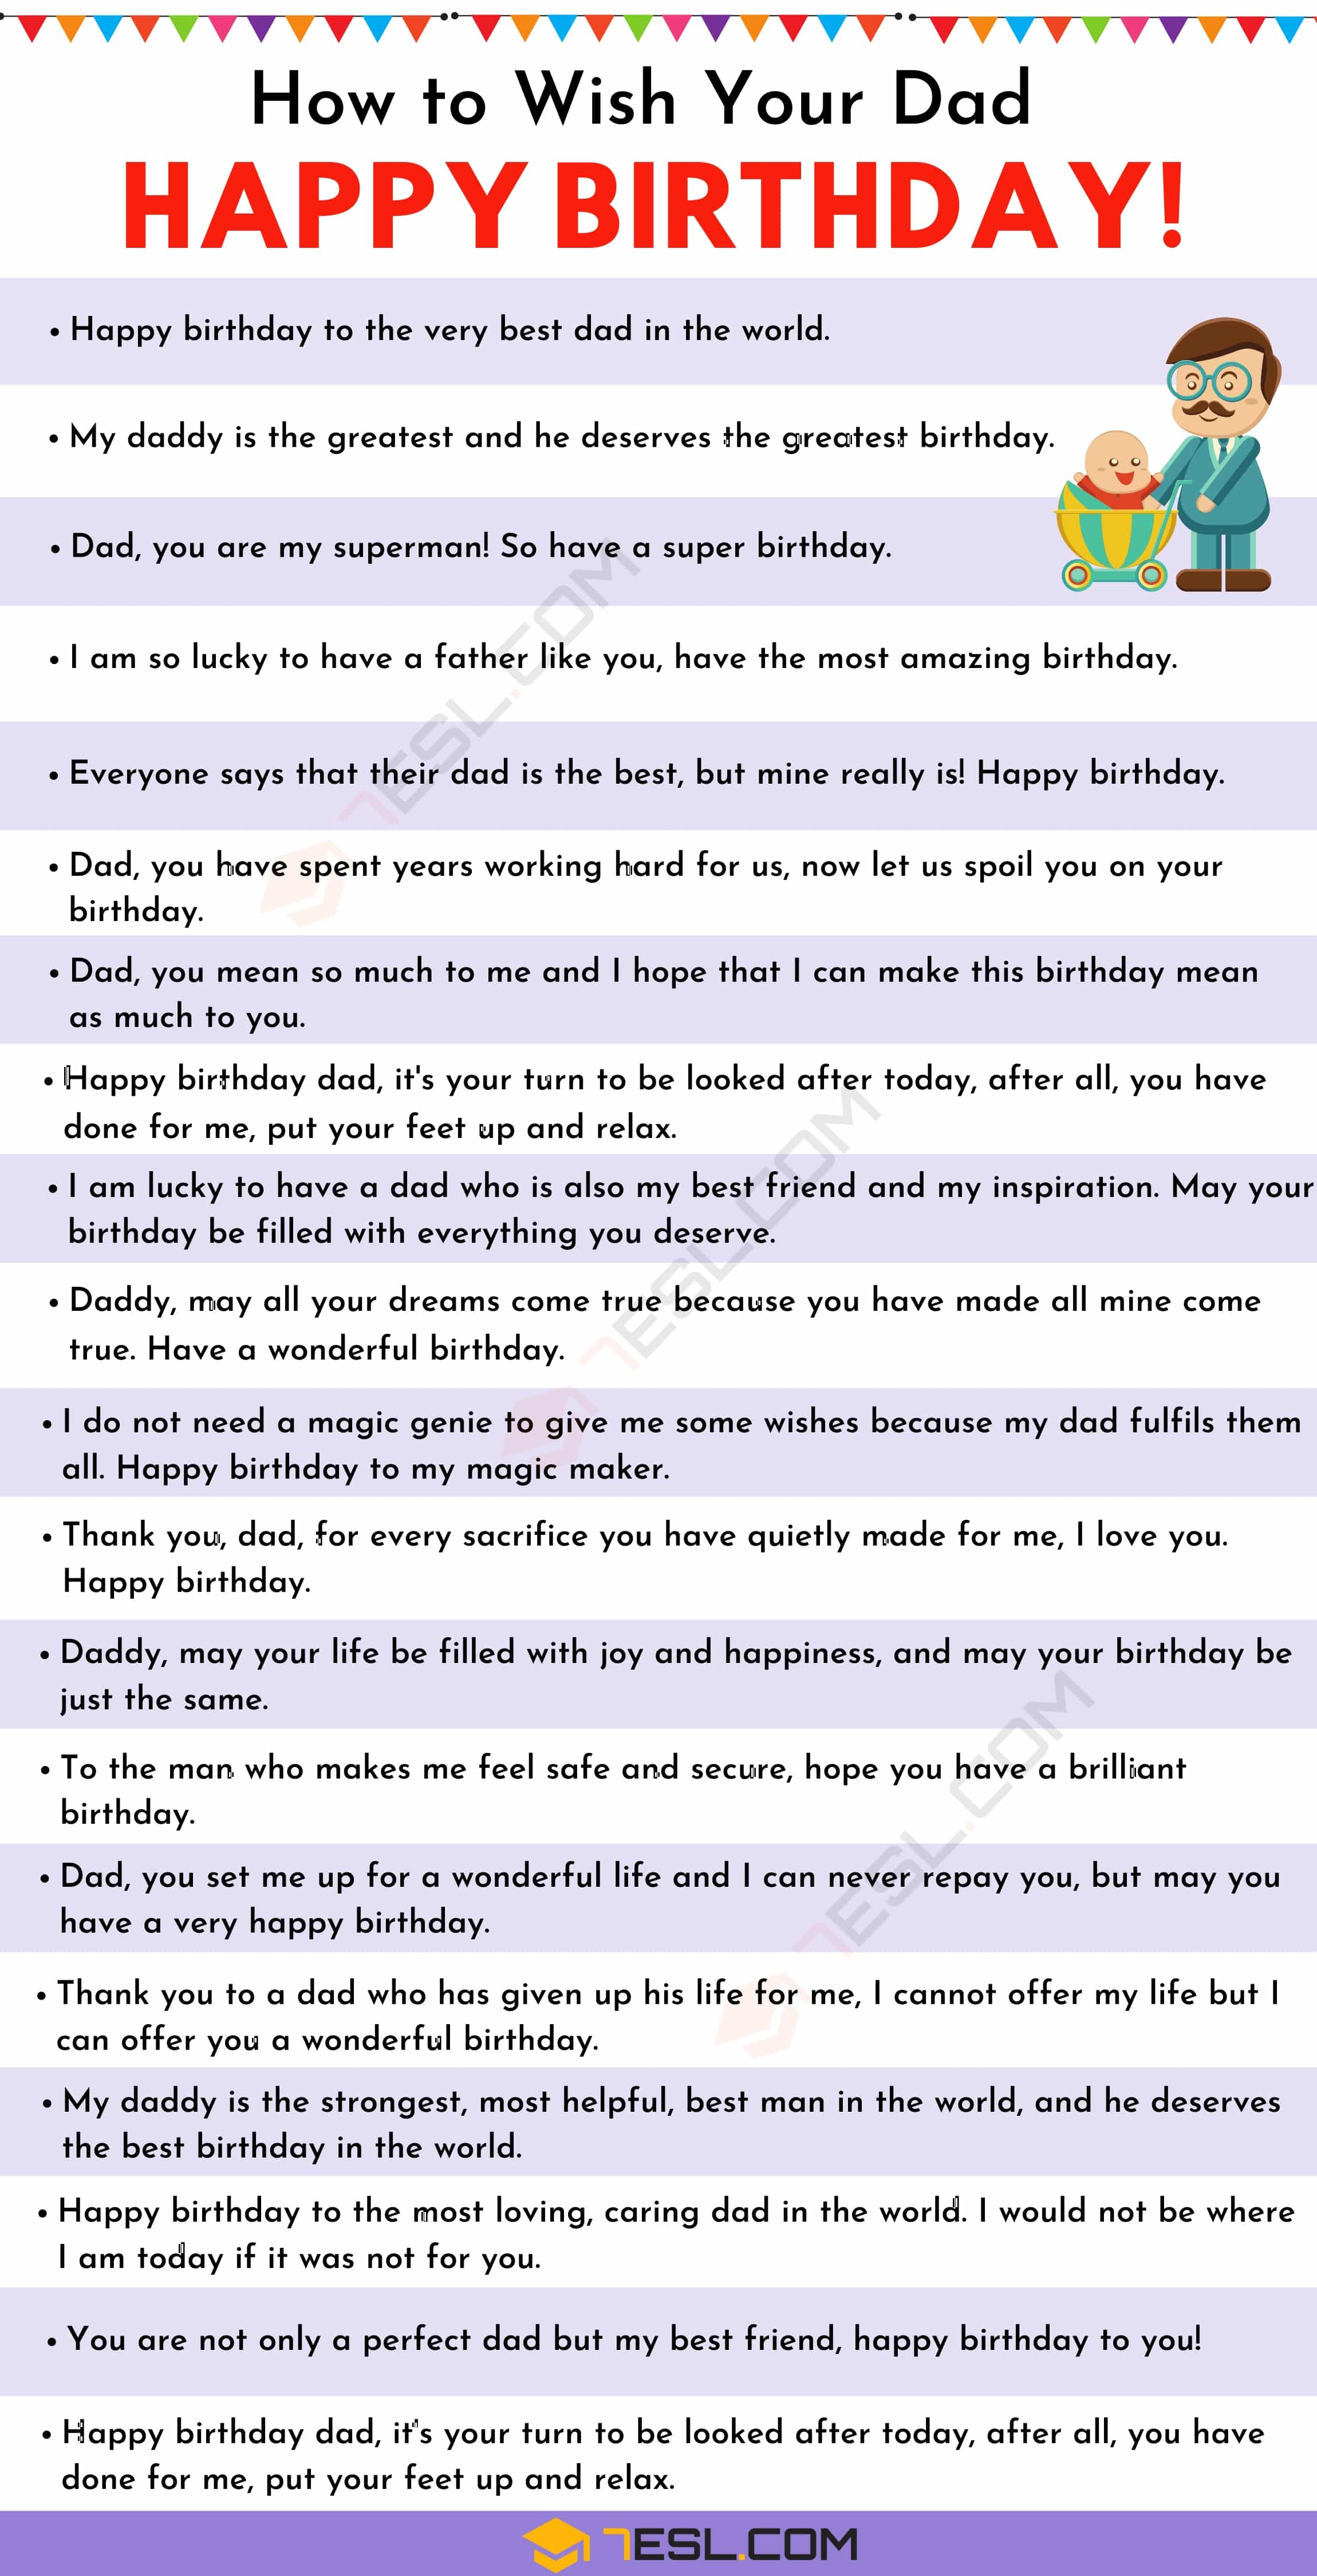 Happy Birthday Dad: 35+ Wonderful Birthday Wishes for Dad